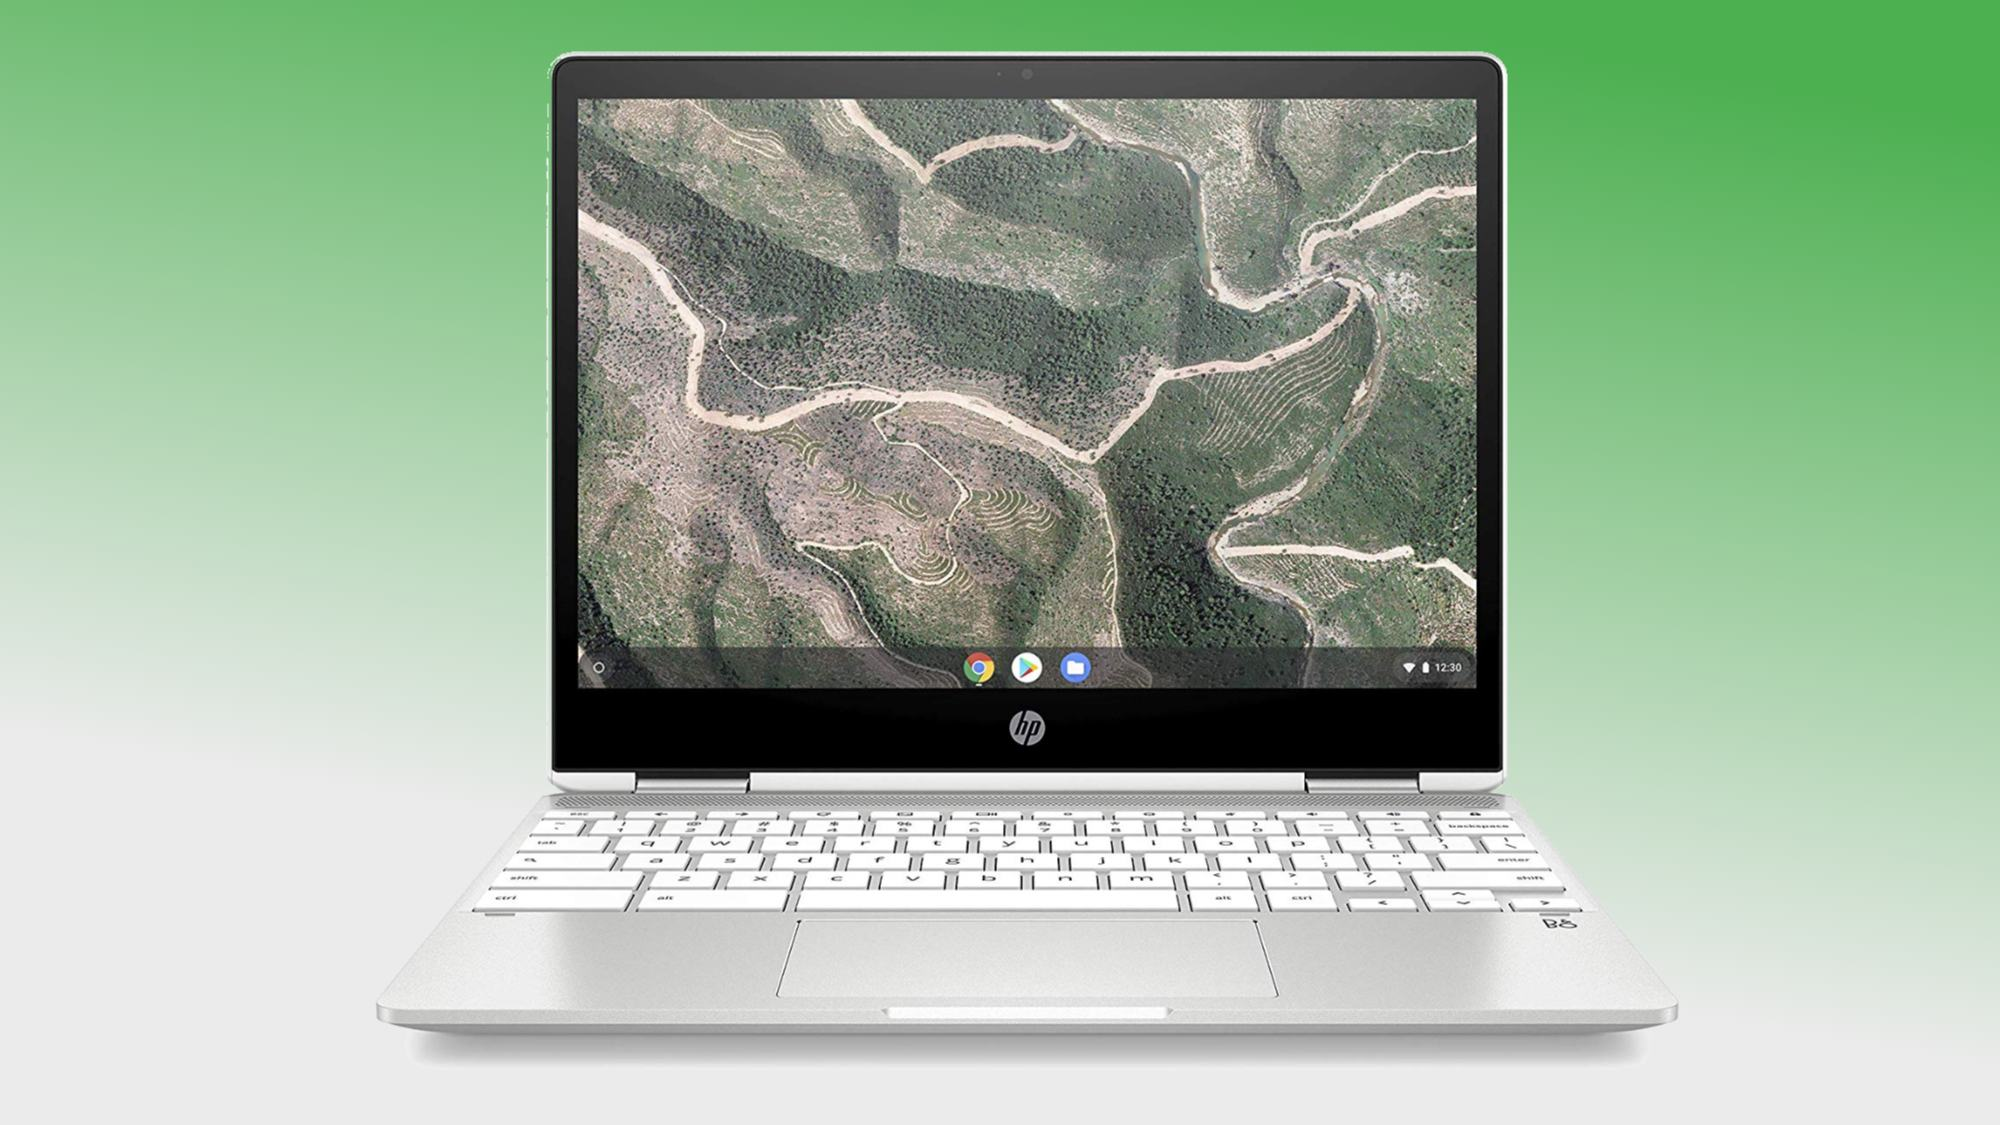 New HP Chromebook x360 12 appears pre-launch with better looks, better processor, and 3:2 screen